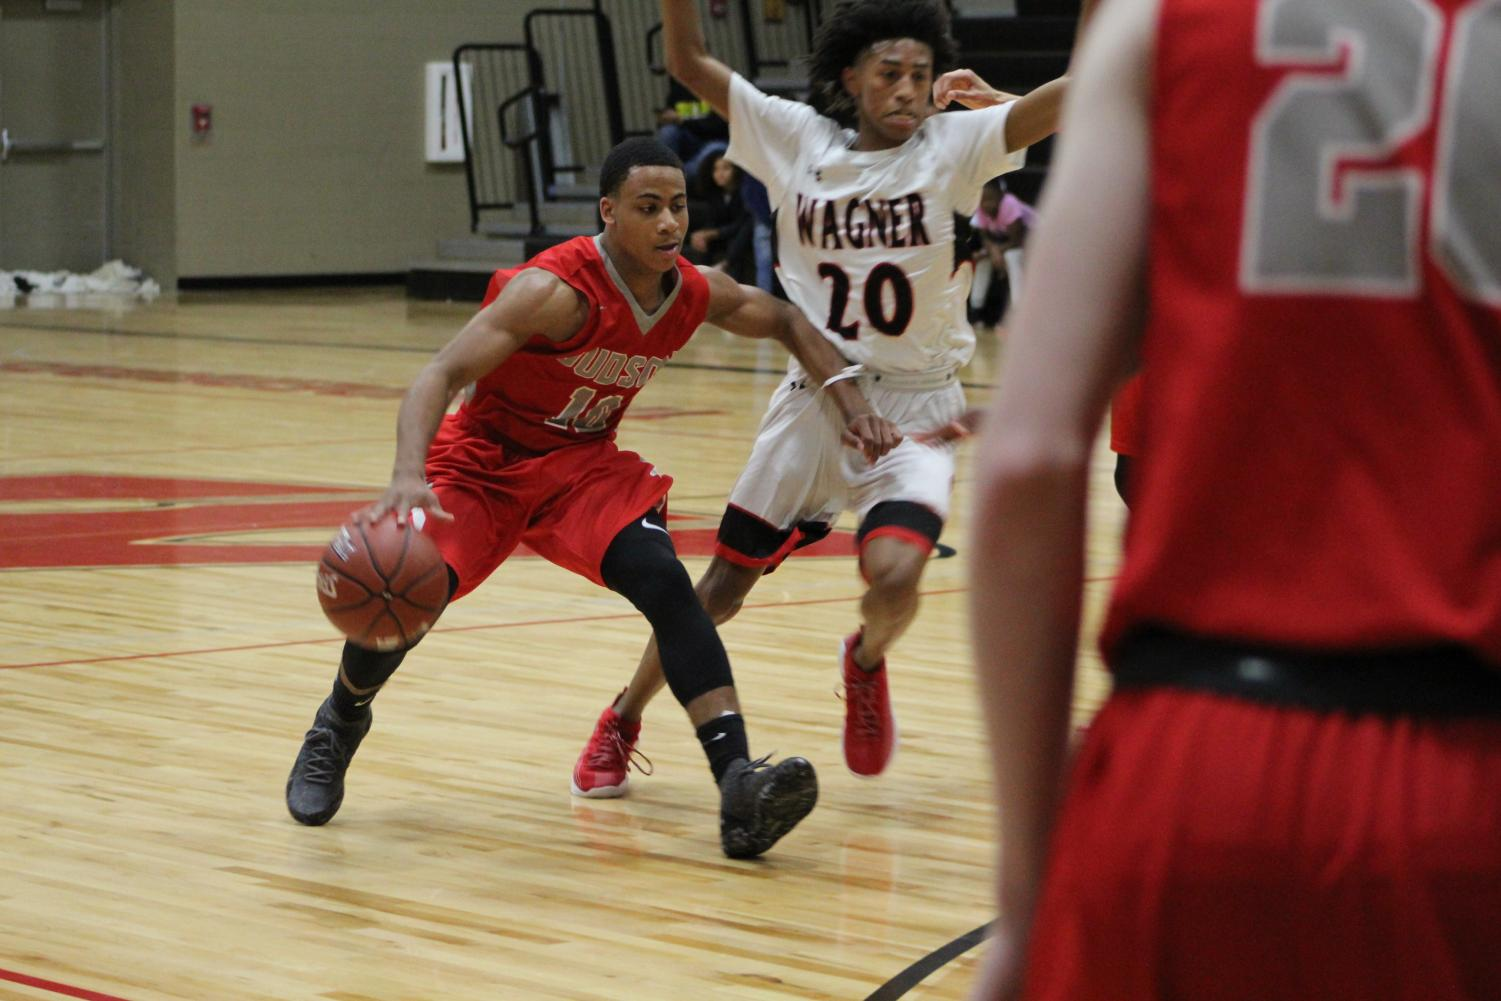 Junior Kyonte Holder dribbles the ball past the Wagner Thunderbird defense. The Rockets fell to the Thunderbirds, 80-68.